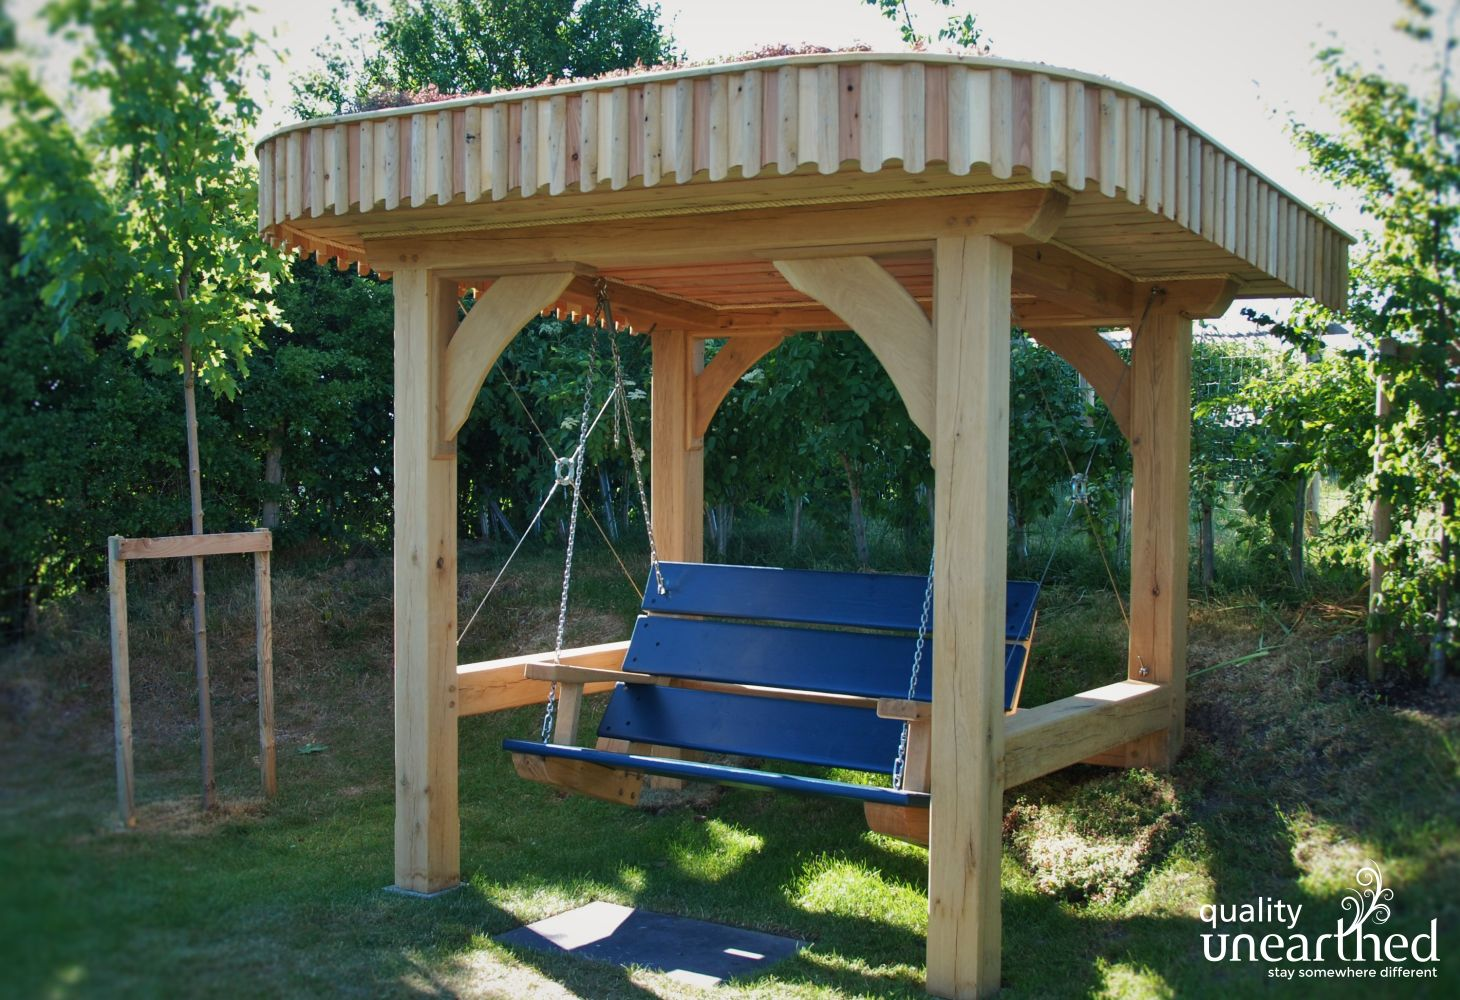 Hand crafted Solid Wood Swing bench with canopy